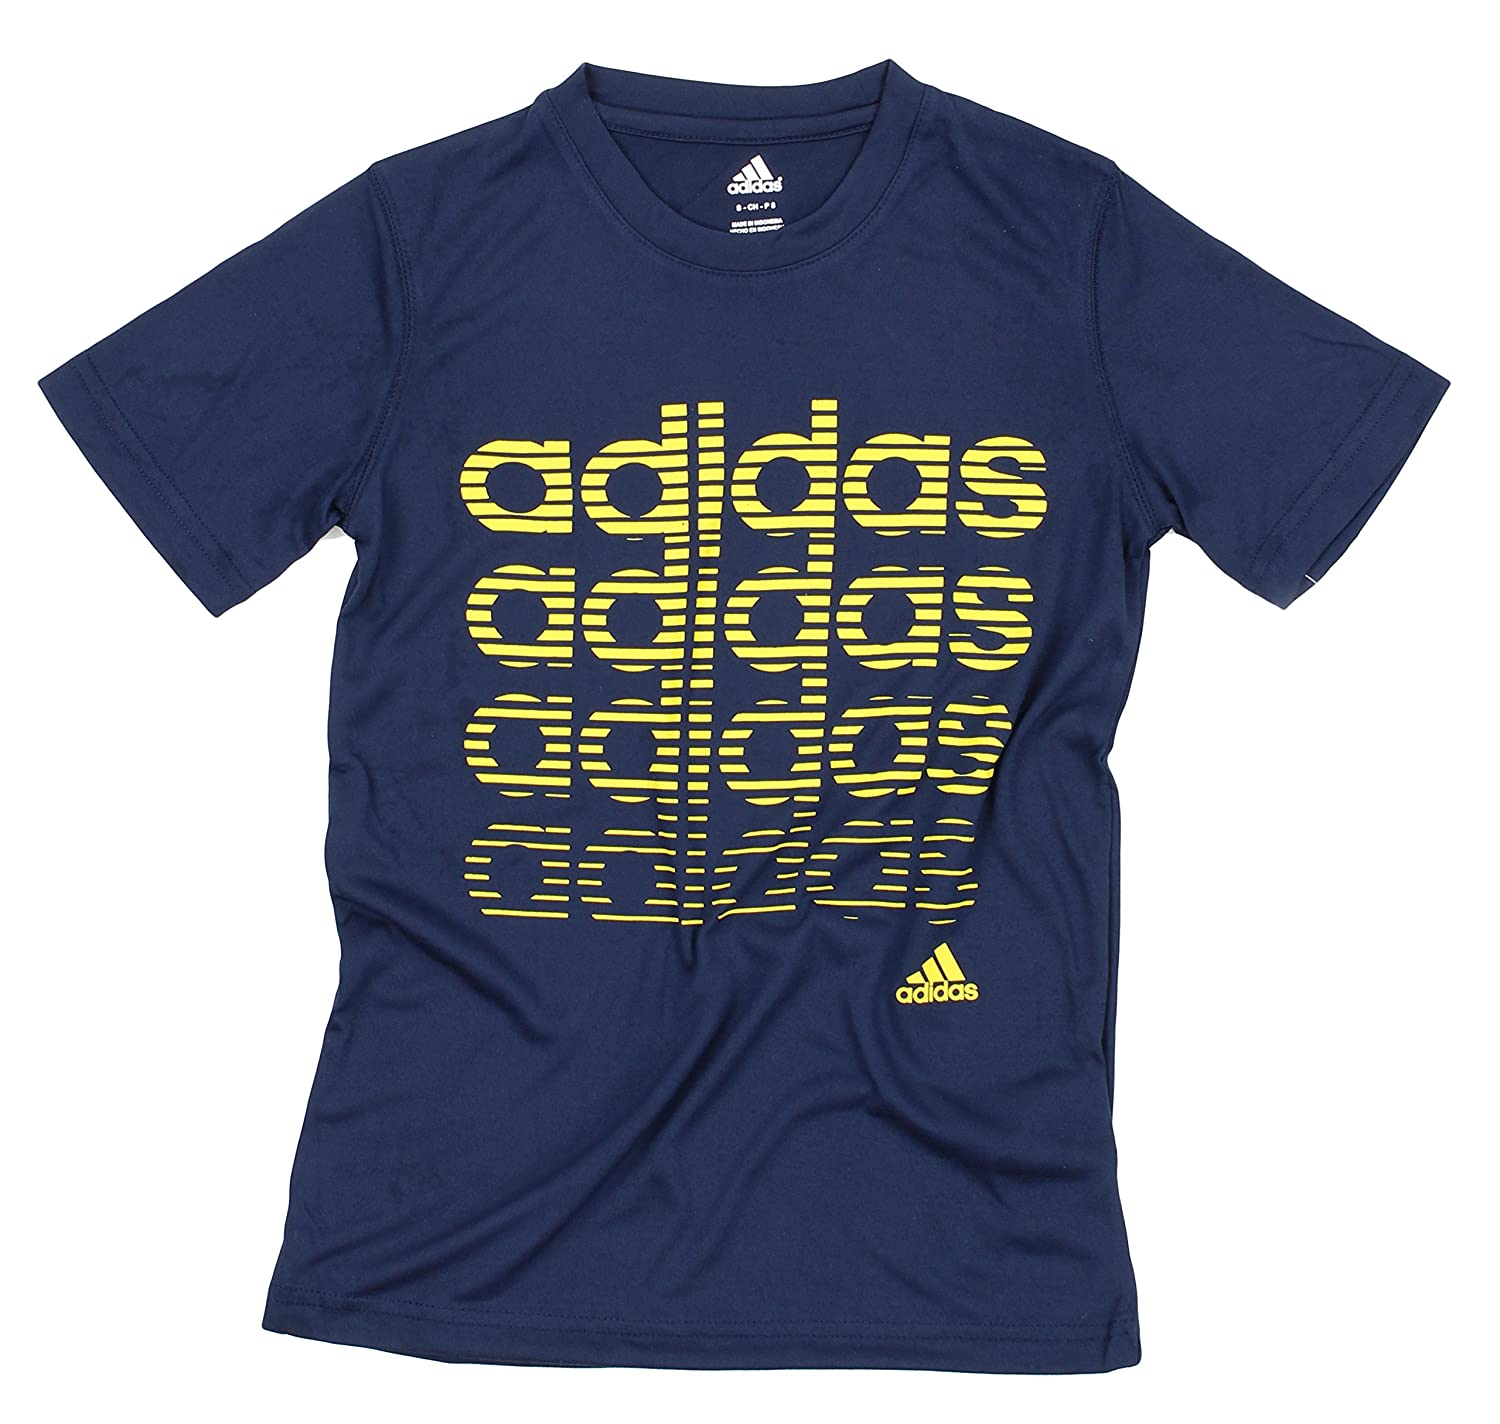 adidas Youth Big Boys Athletic T-Shirt